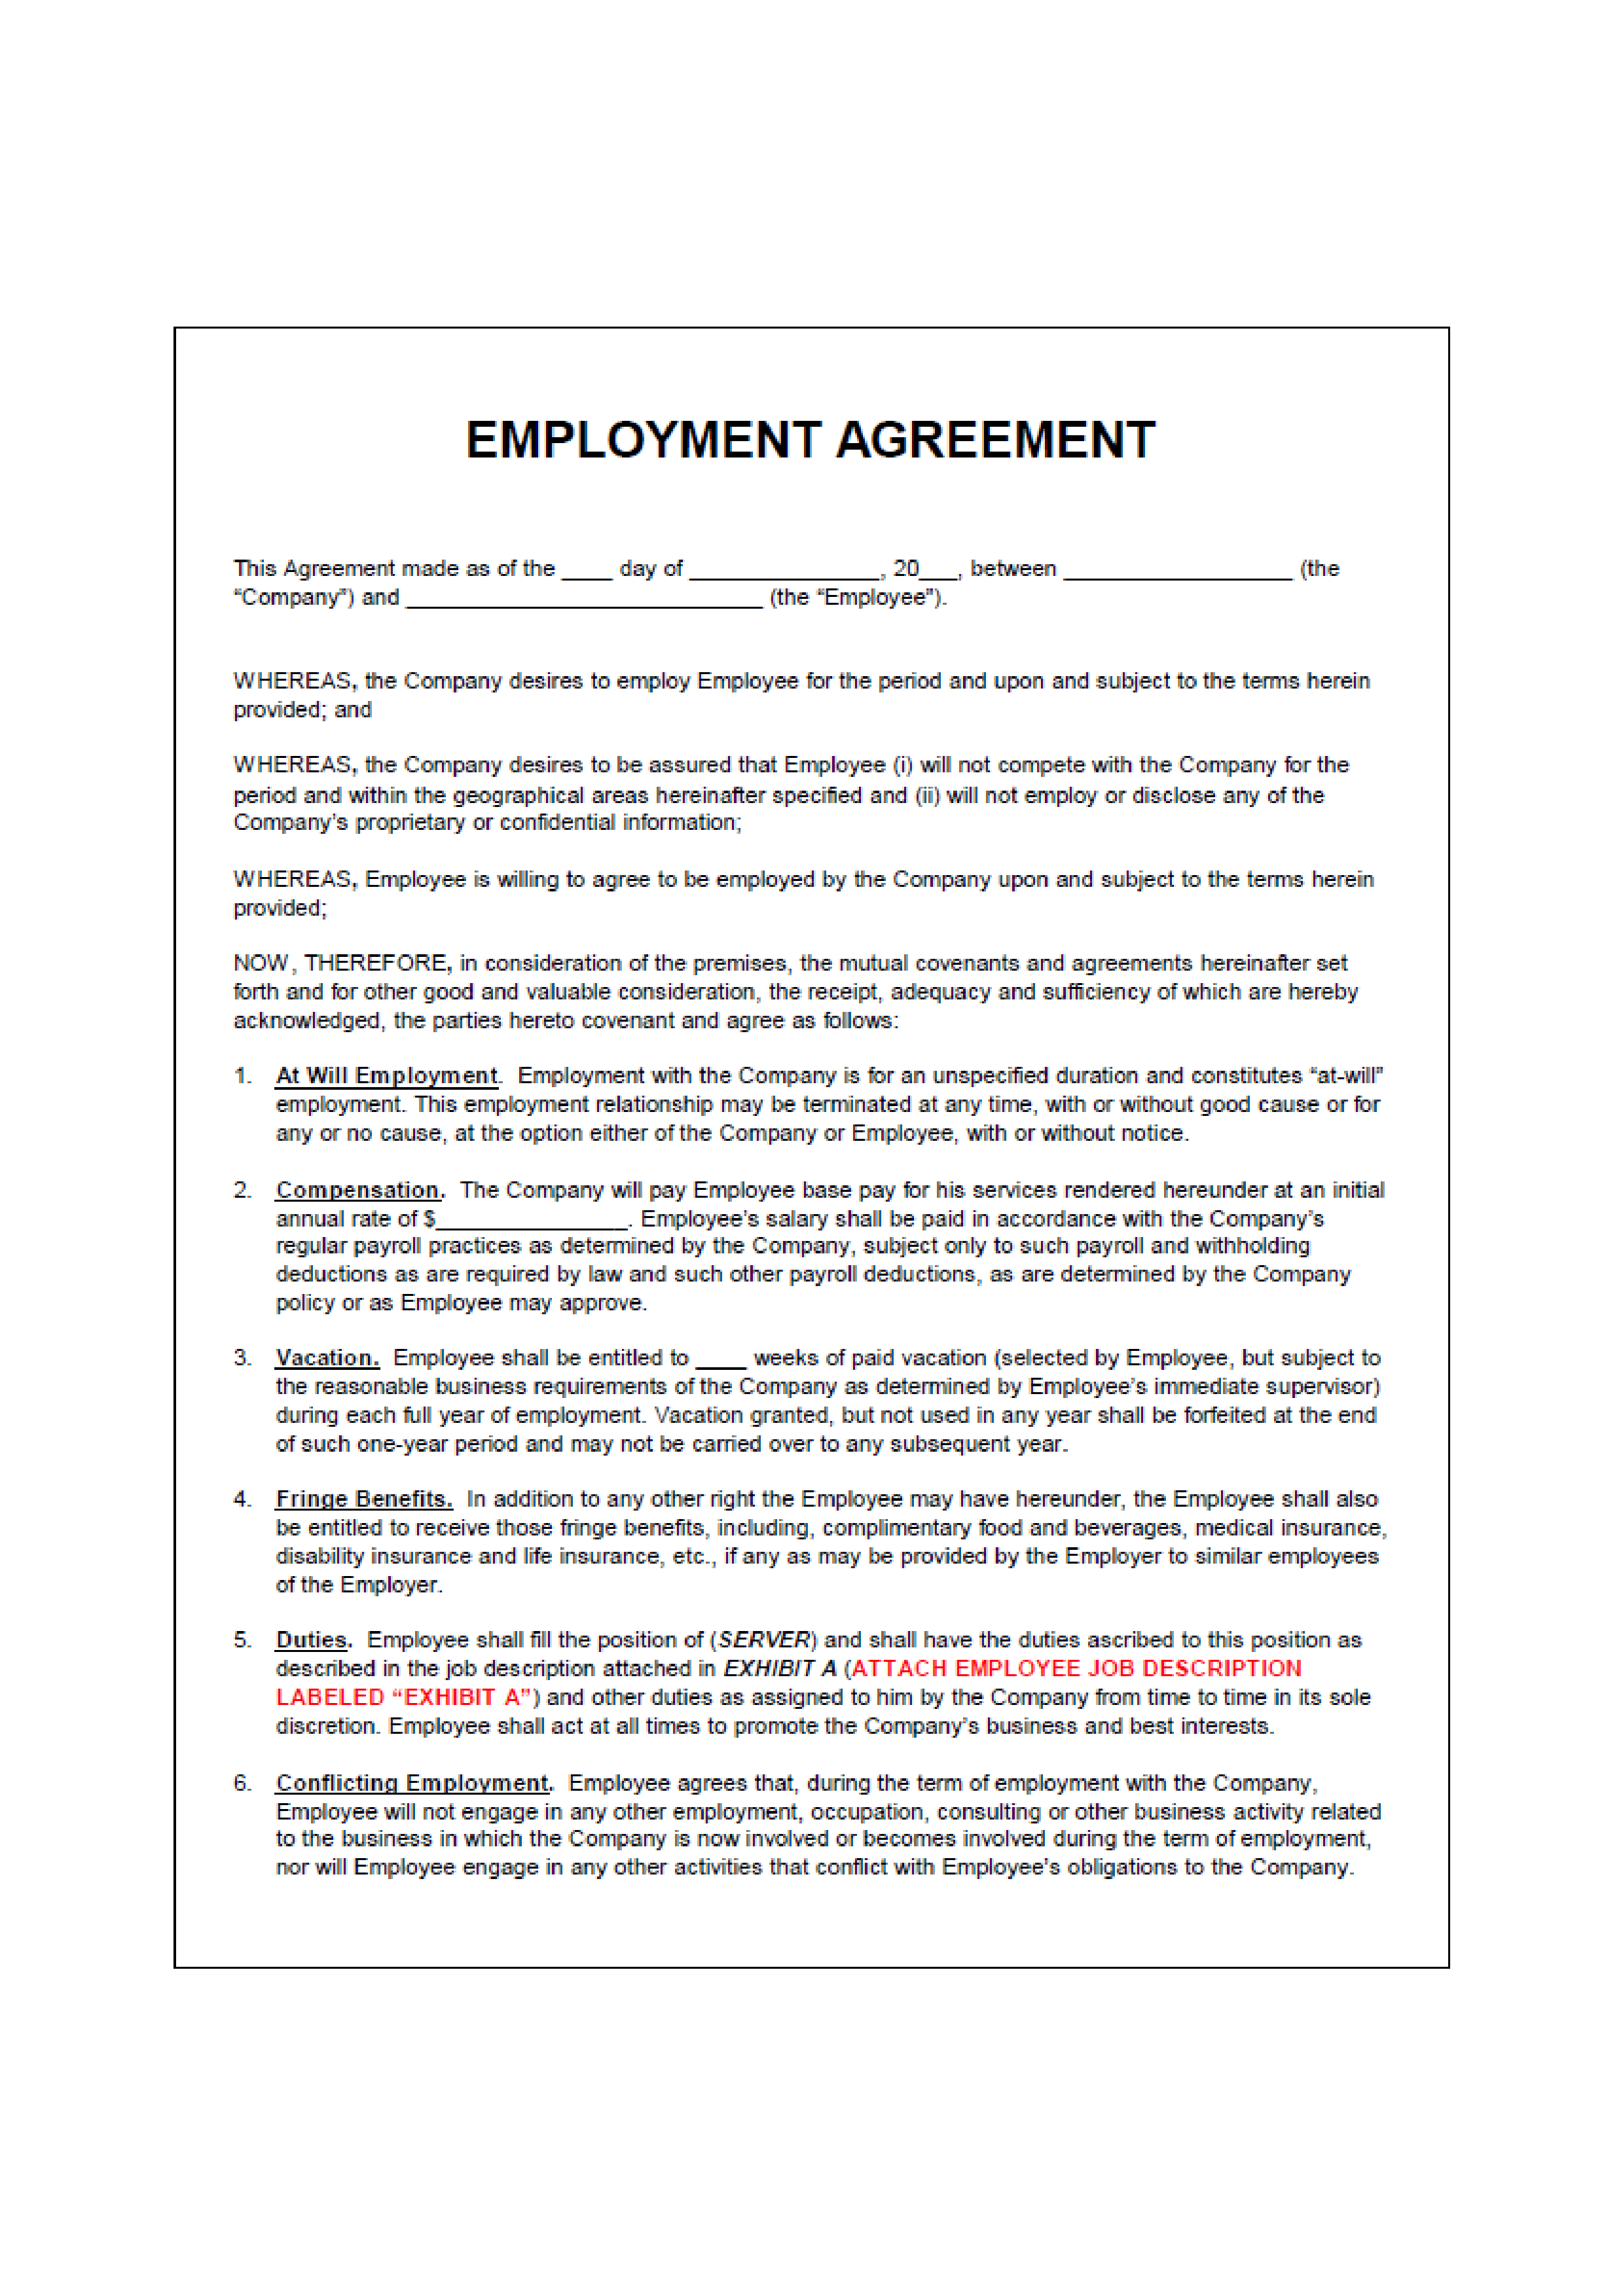 Free Employment Agreement Cafe Templates At Allbusinesstemplates